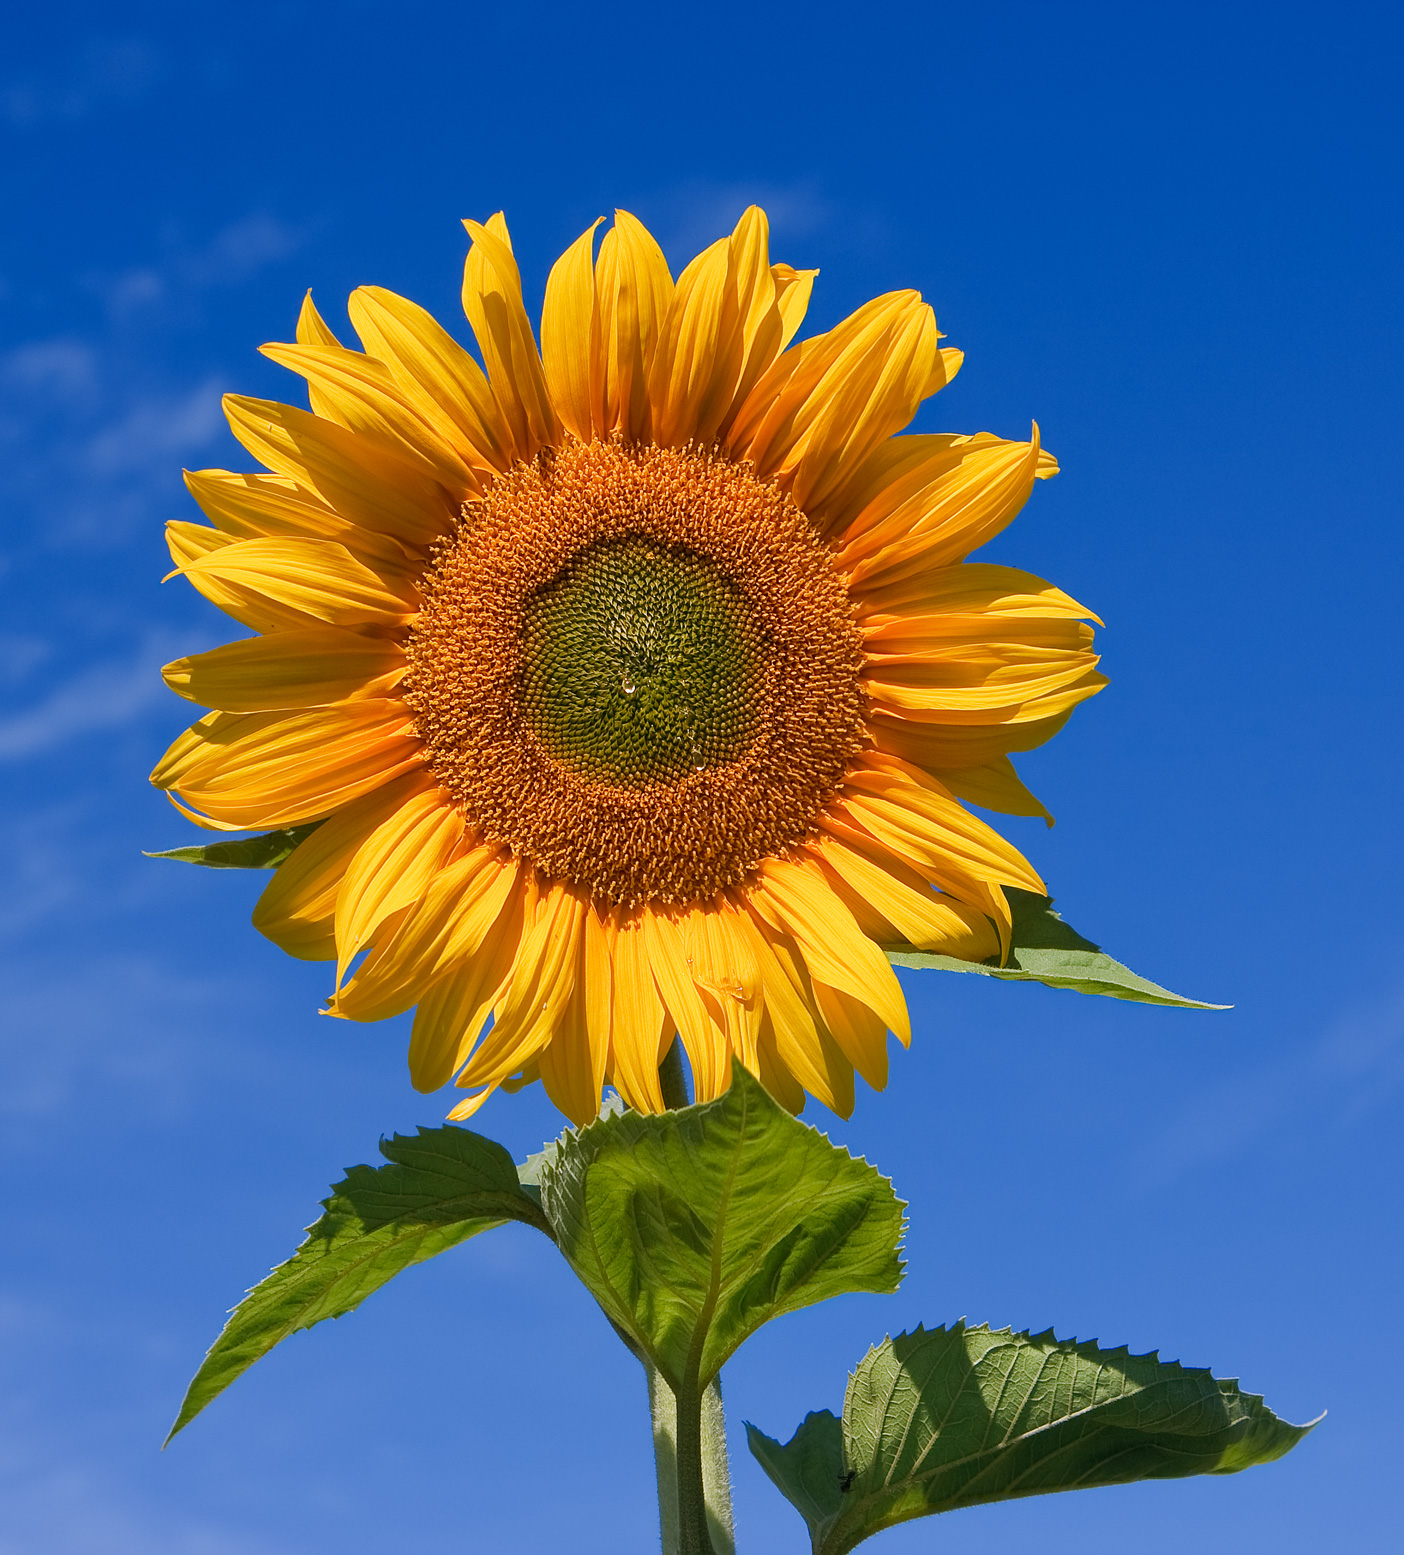 sunflower pic to entice learners